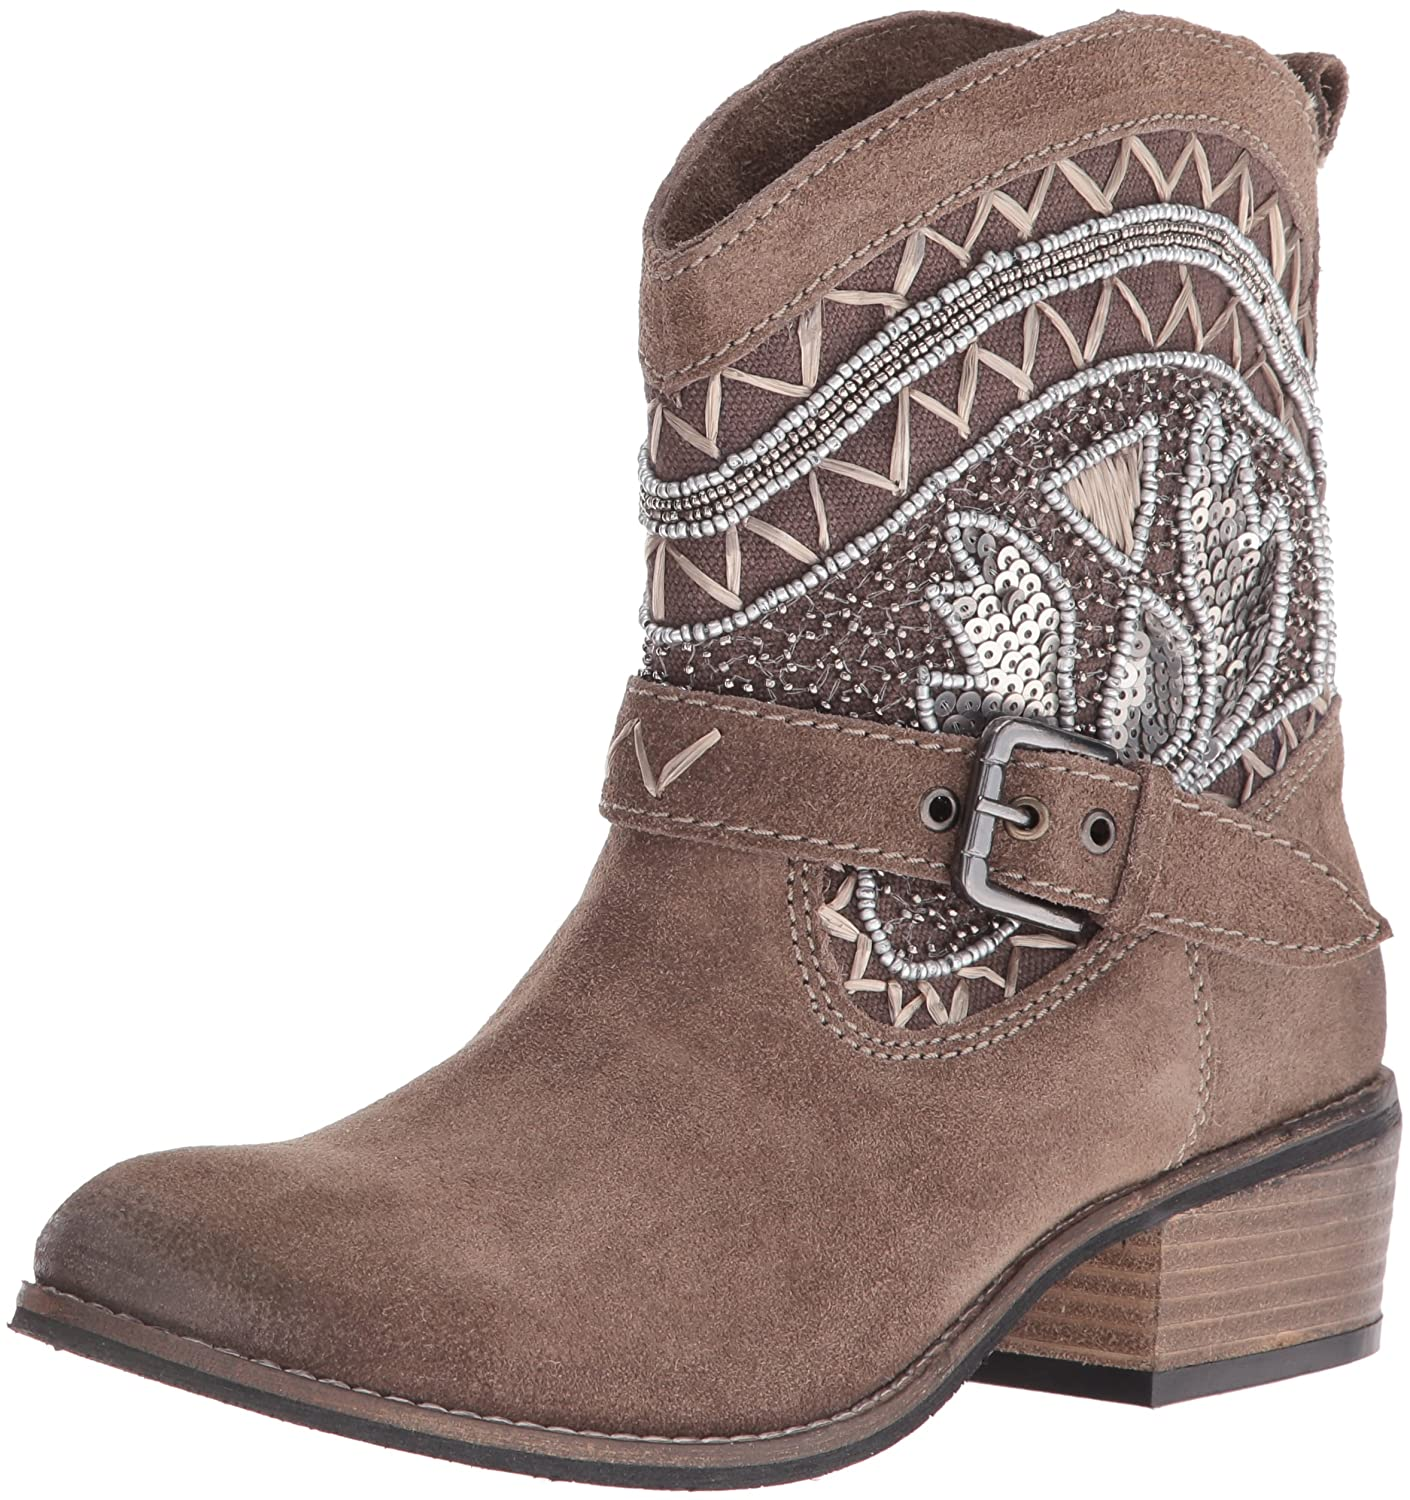 Women's Deco Stytch Boot